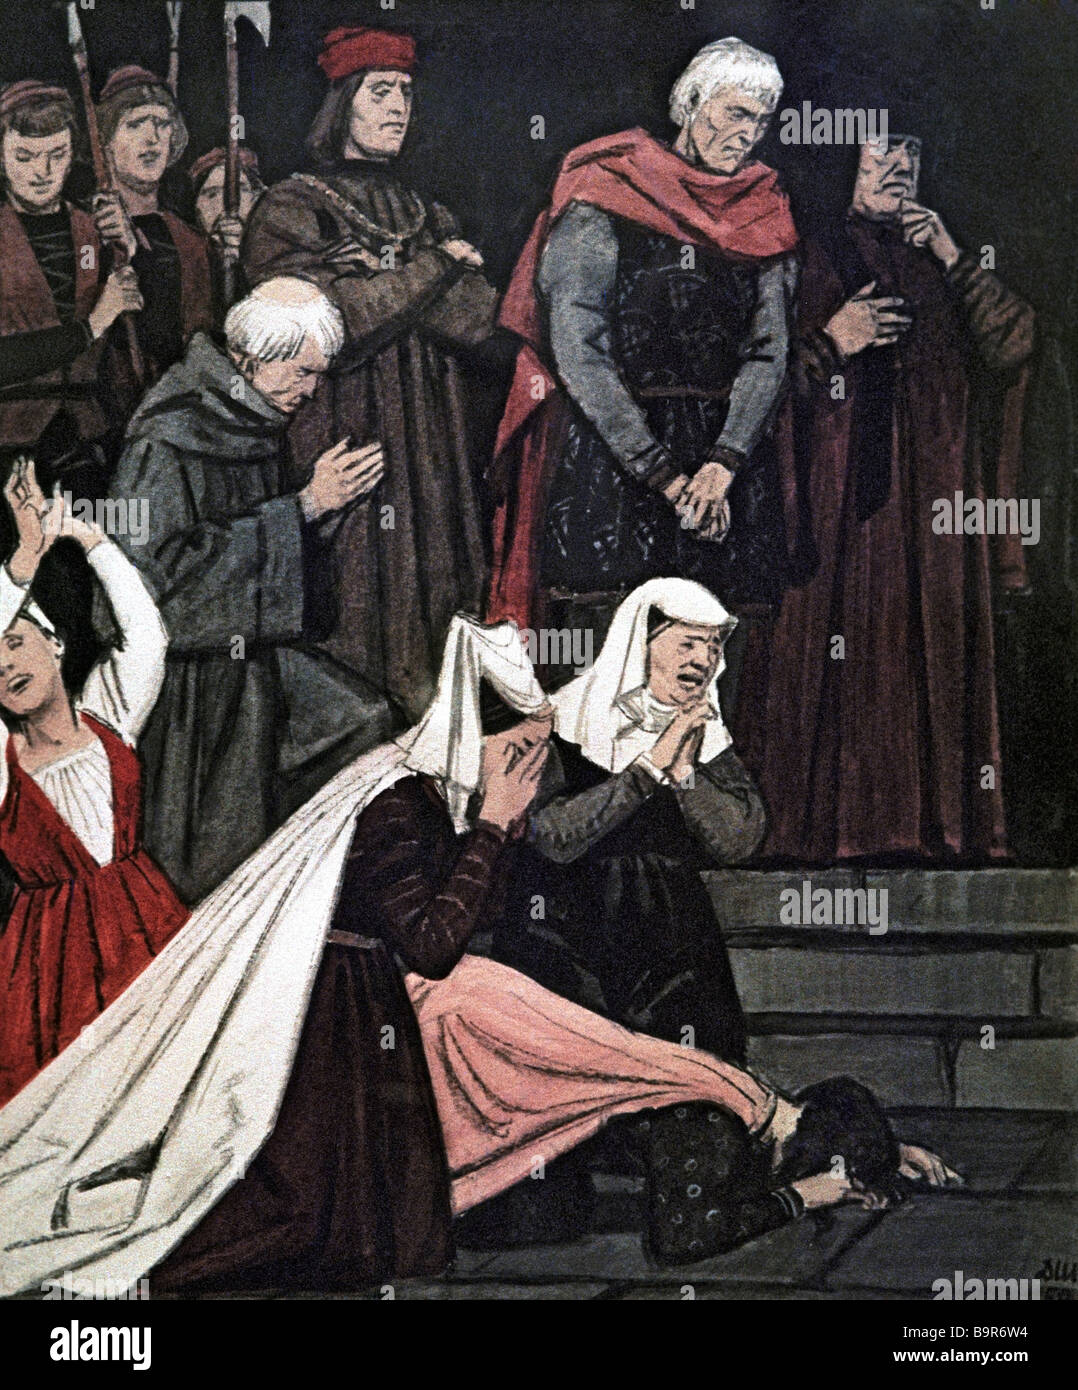 Shmarinov 1907 1999 Montecchi and Capuletti Over the Romeo and Juliet Bodies Illustration to Shakespear s tragedy - Stock Image